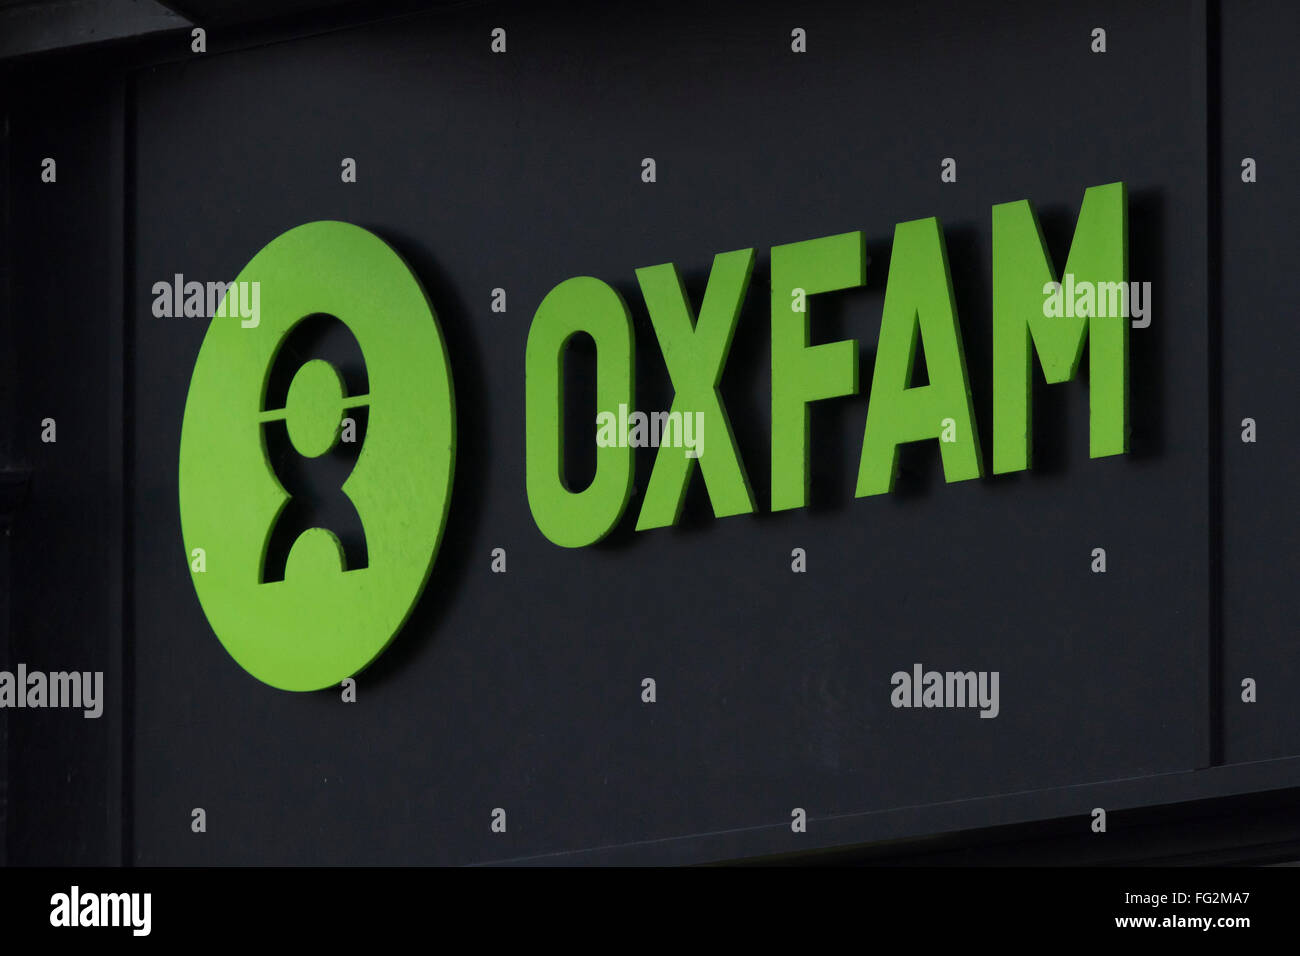 Oxfam charity sign logo - Stock Image